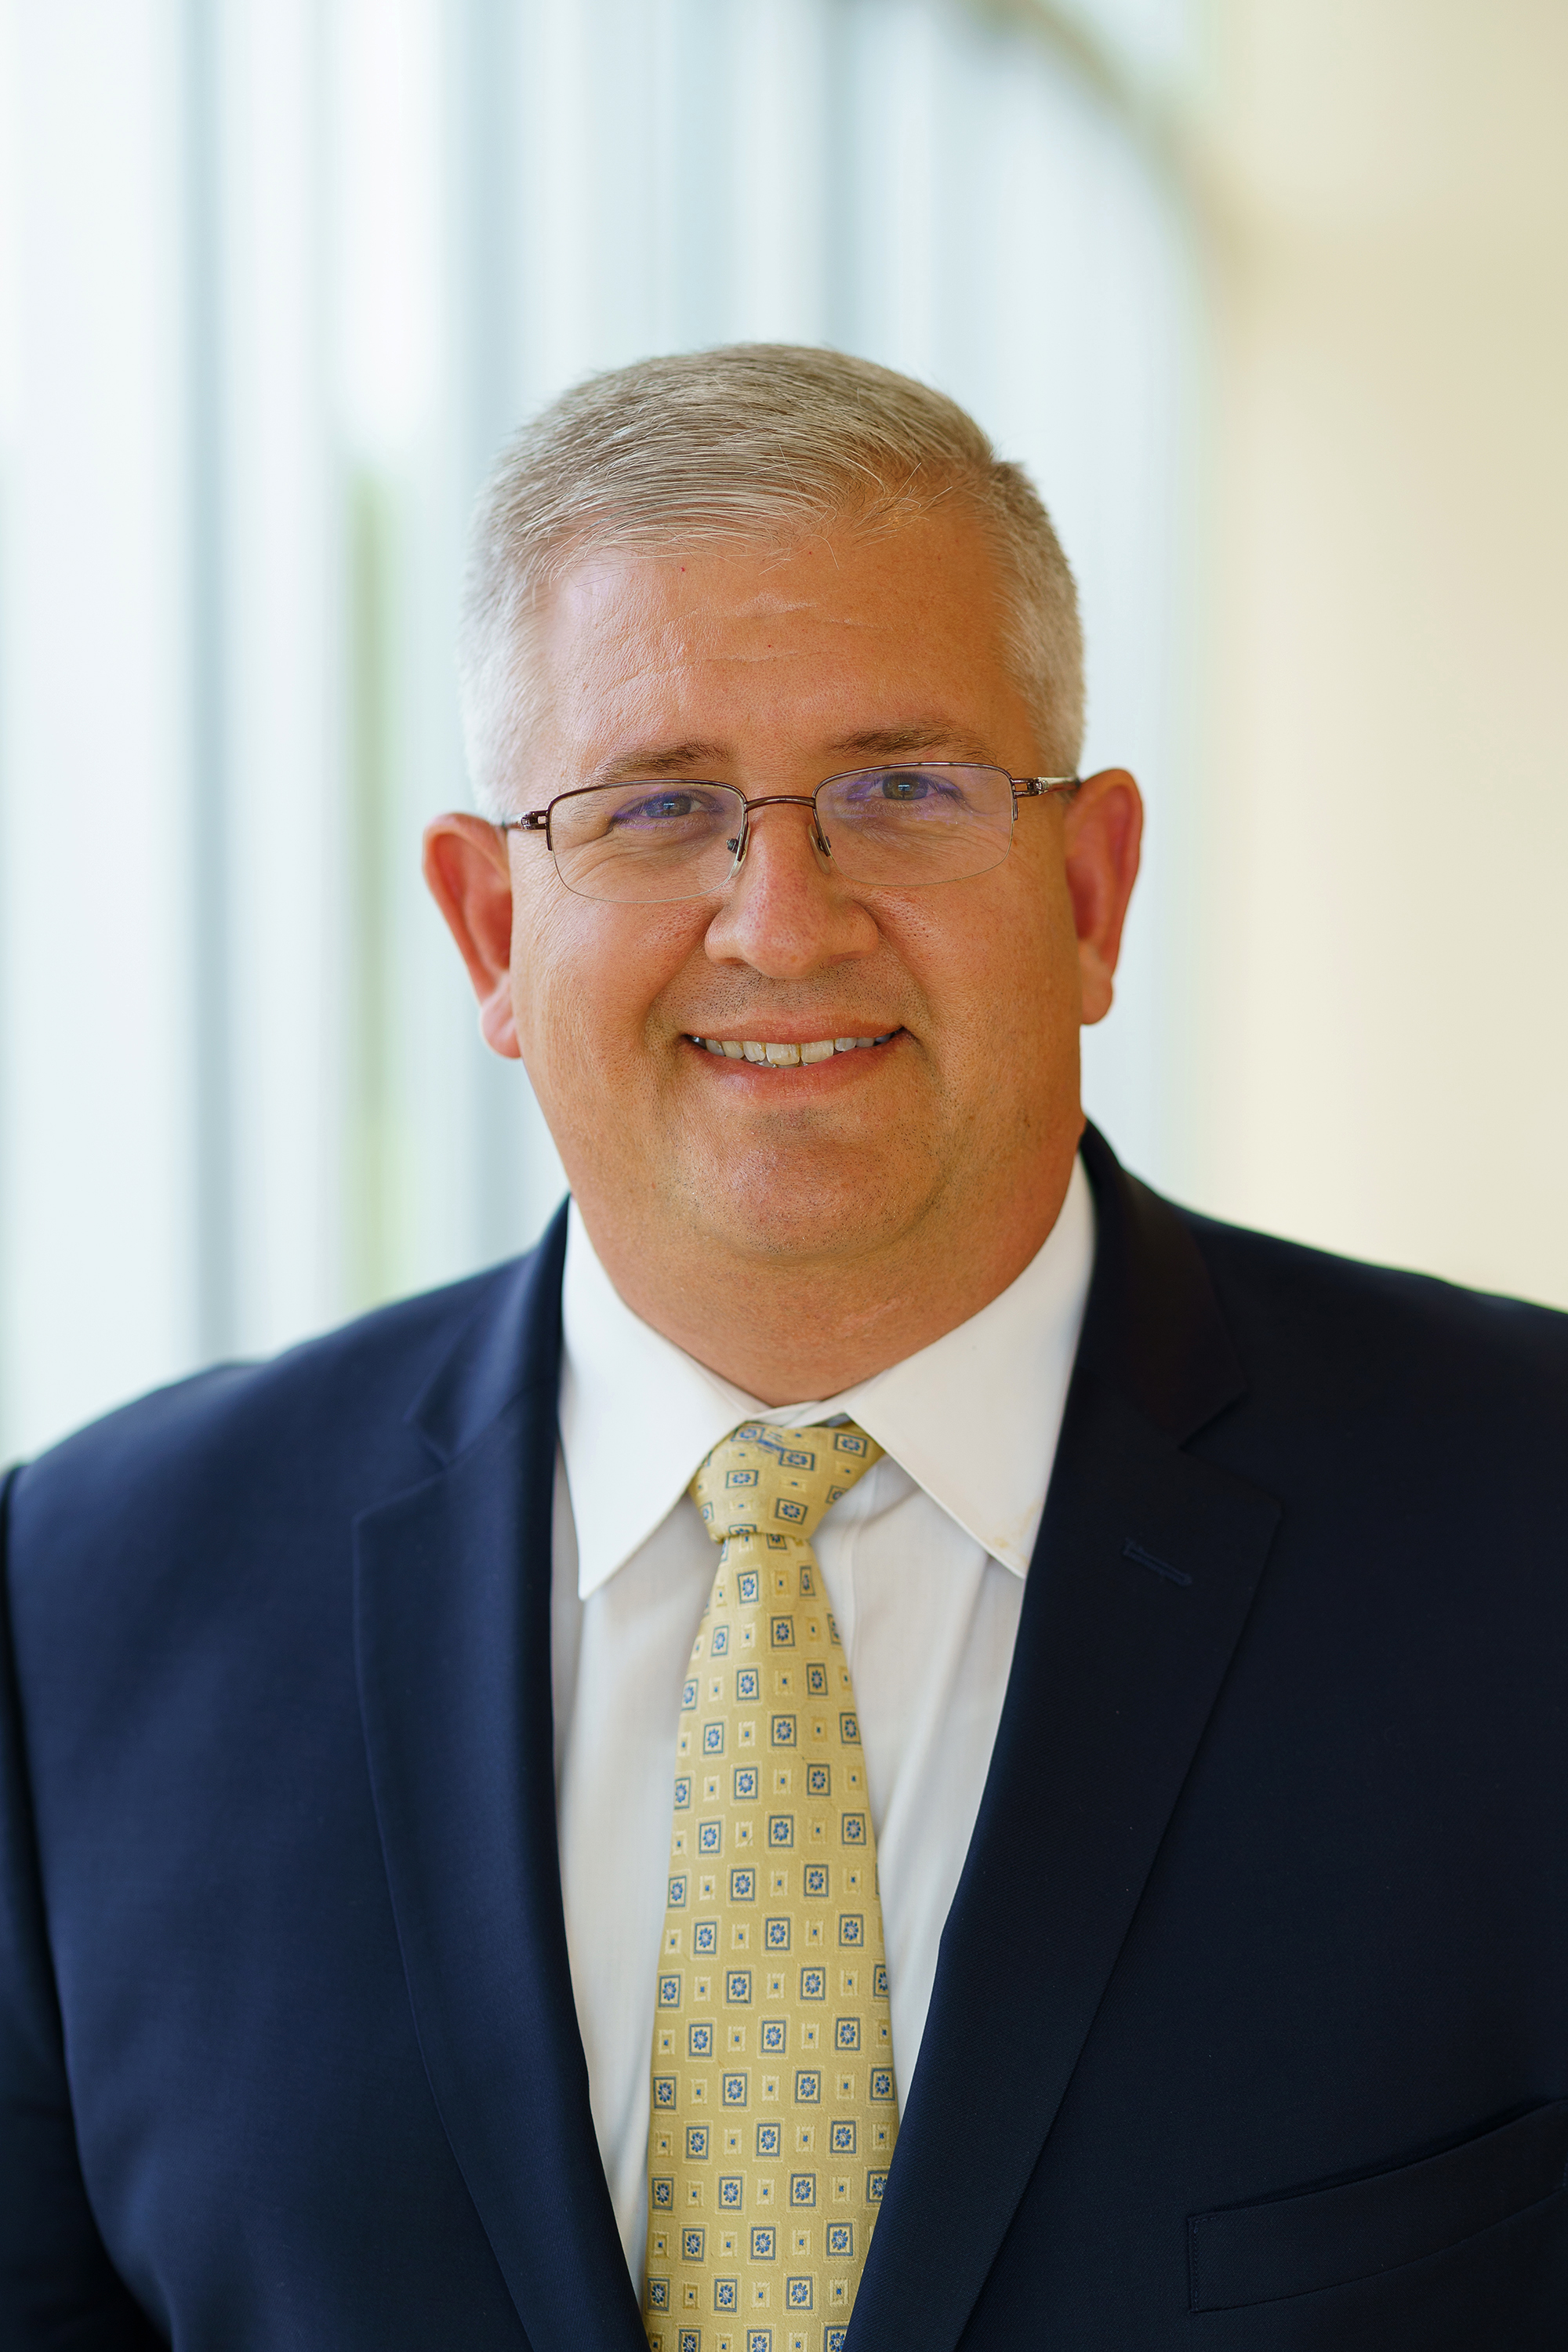 Dr. Mark Conrad is now chief of vascular surgery at st. elizabeth's medical center